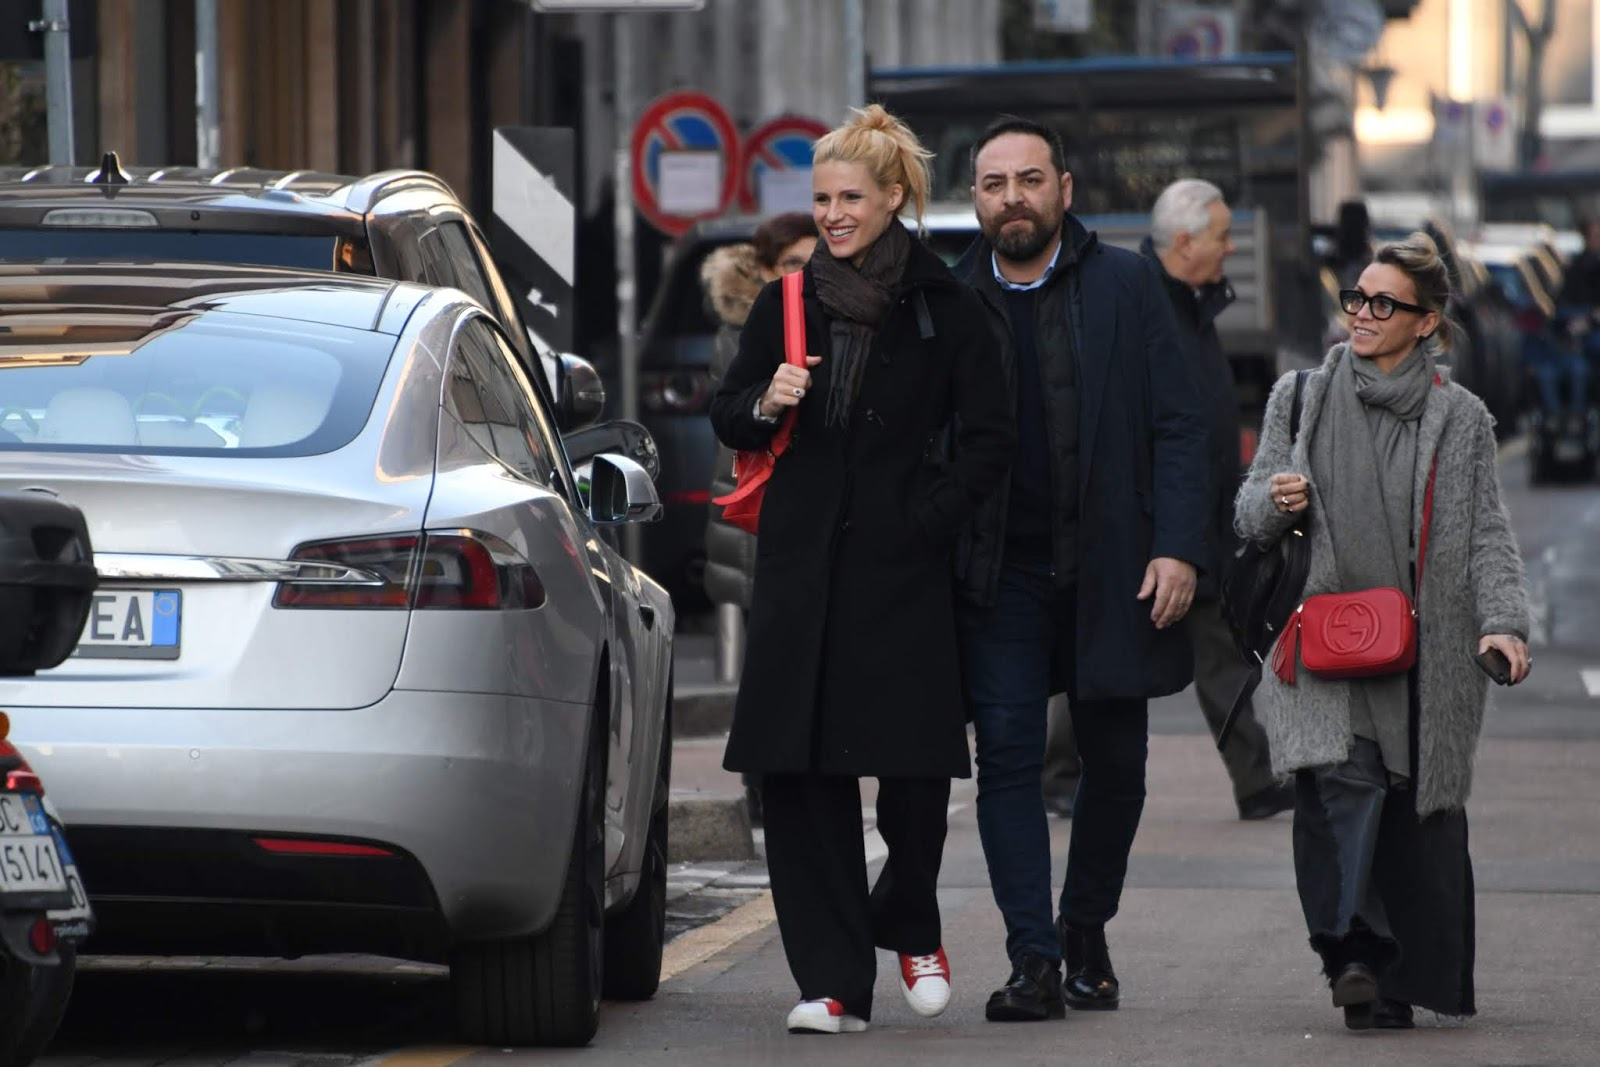 Michelle Hunziker out for a walk in Milan, Italy - 02/05/2019